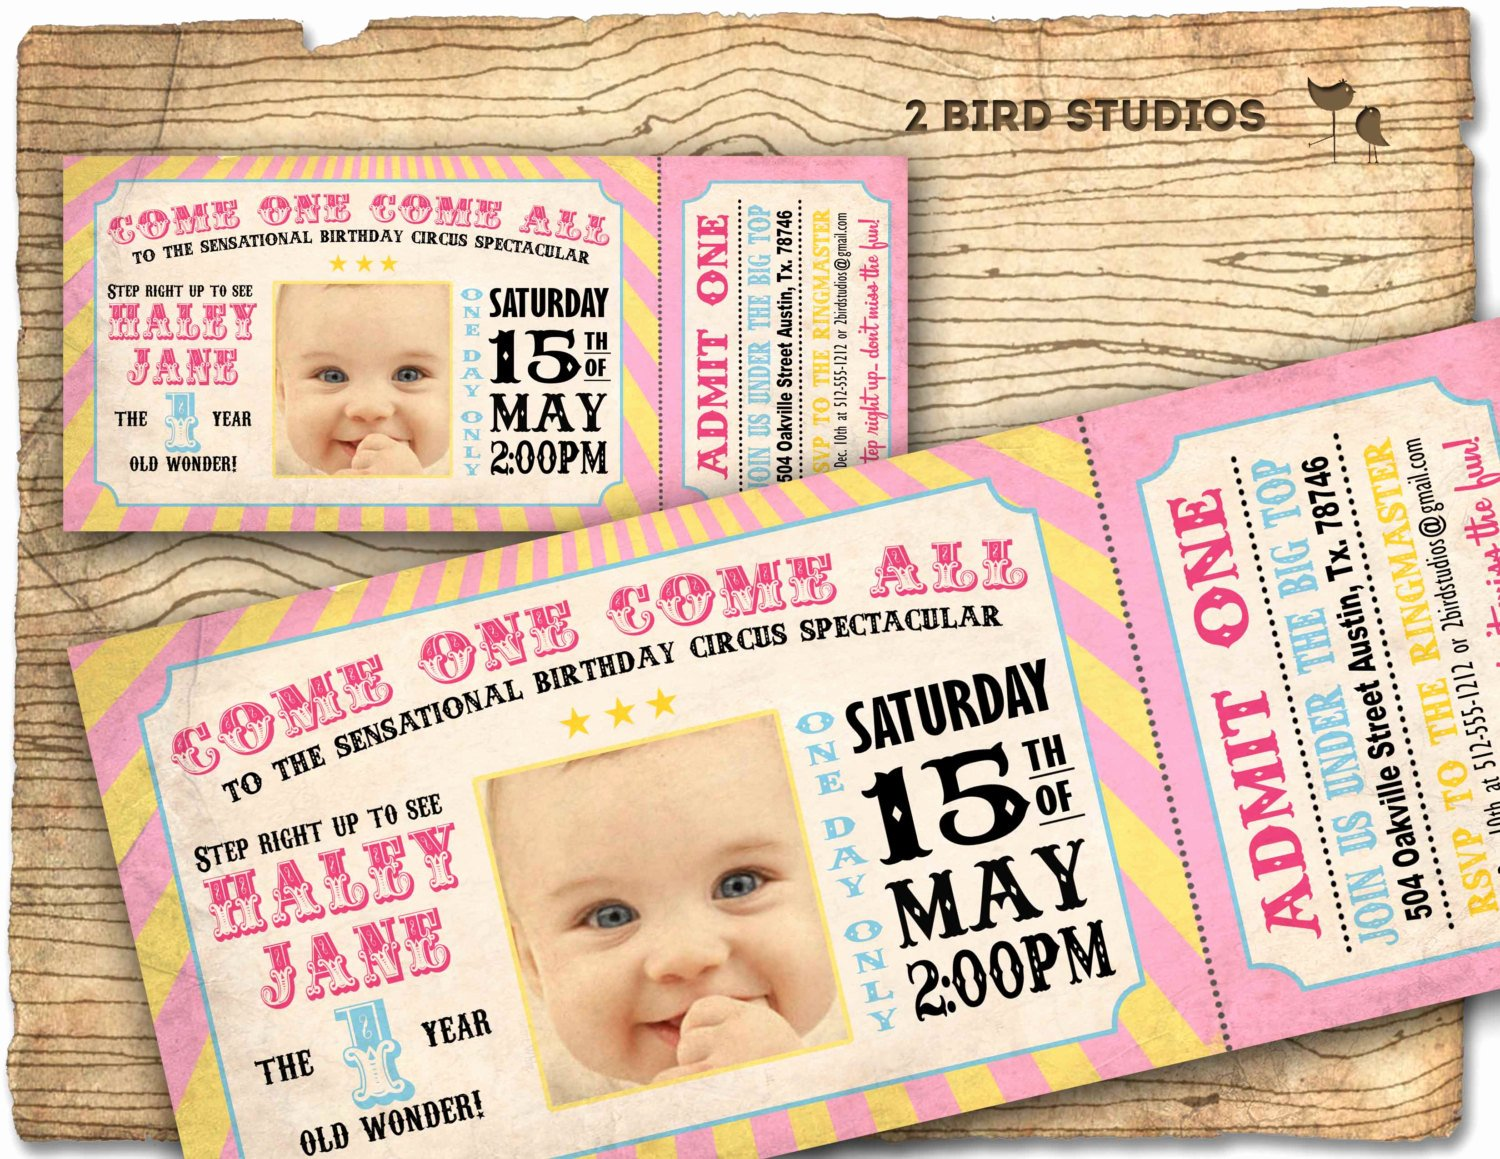 Carnival Birthday Party Invitations Best Of Circus Invitation Girls Carnival Party Invitation by 2birdstudios